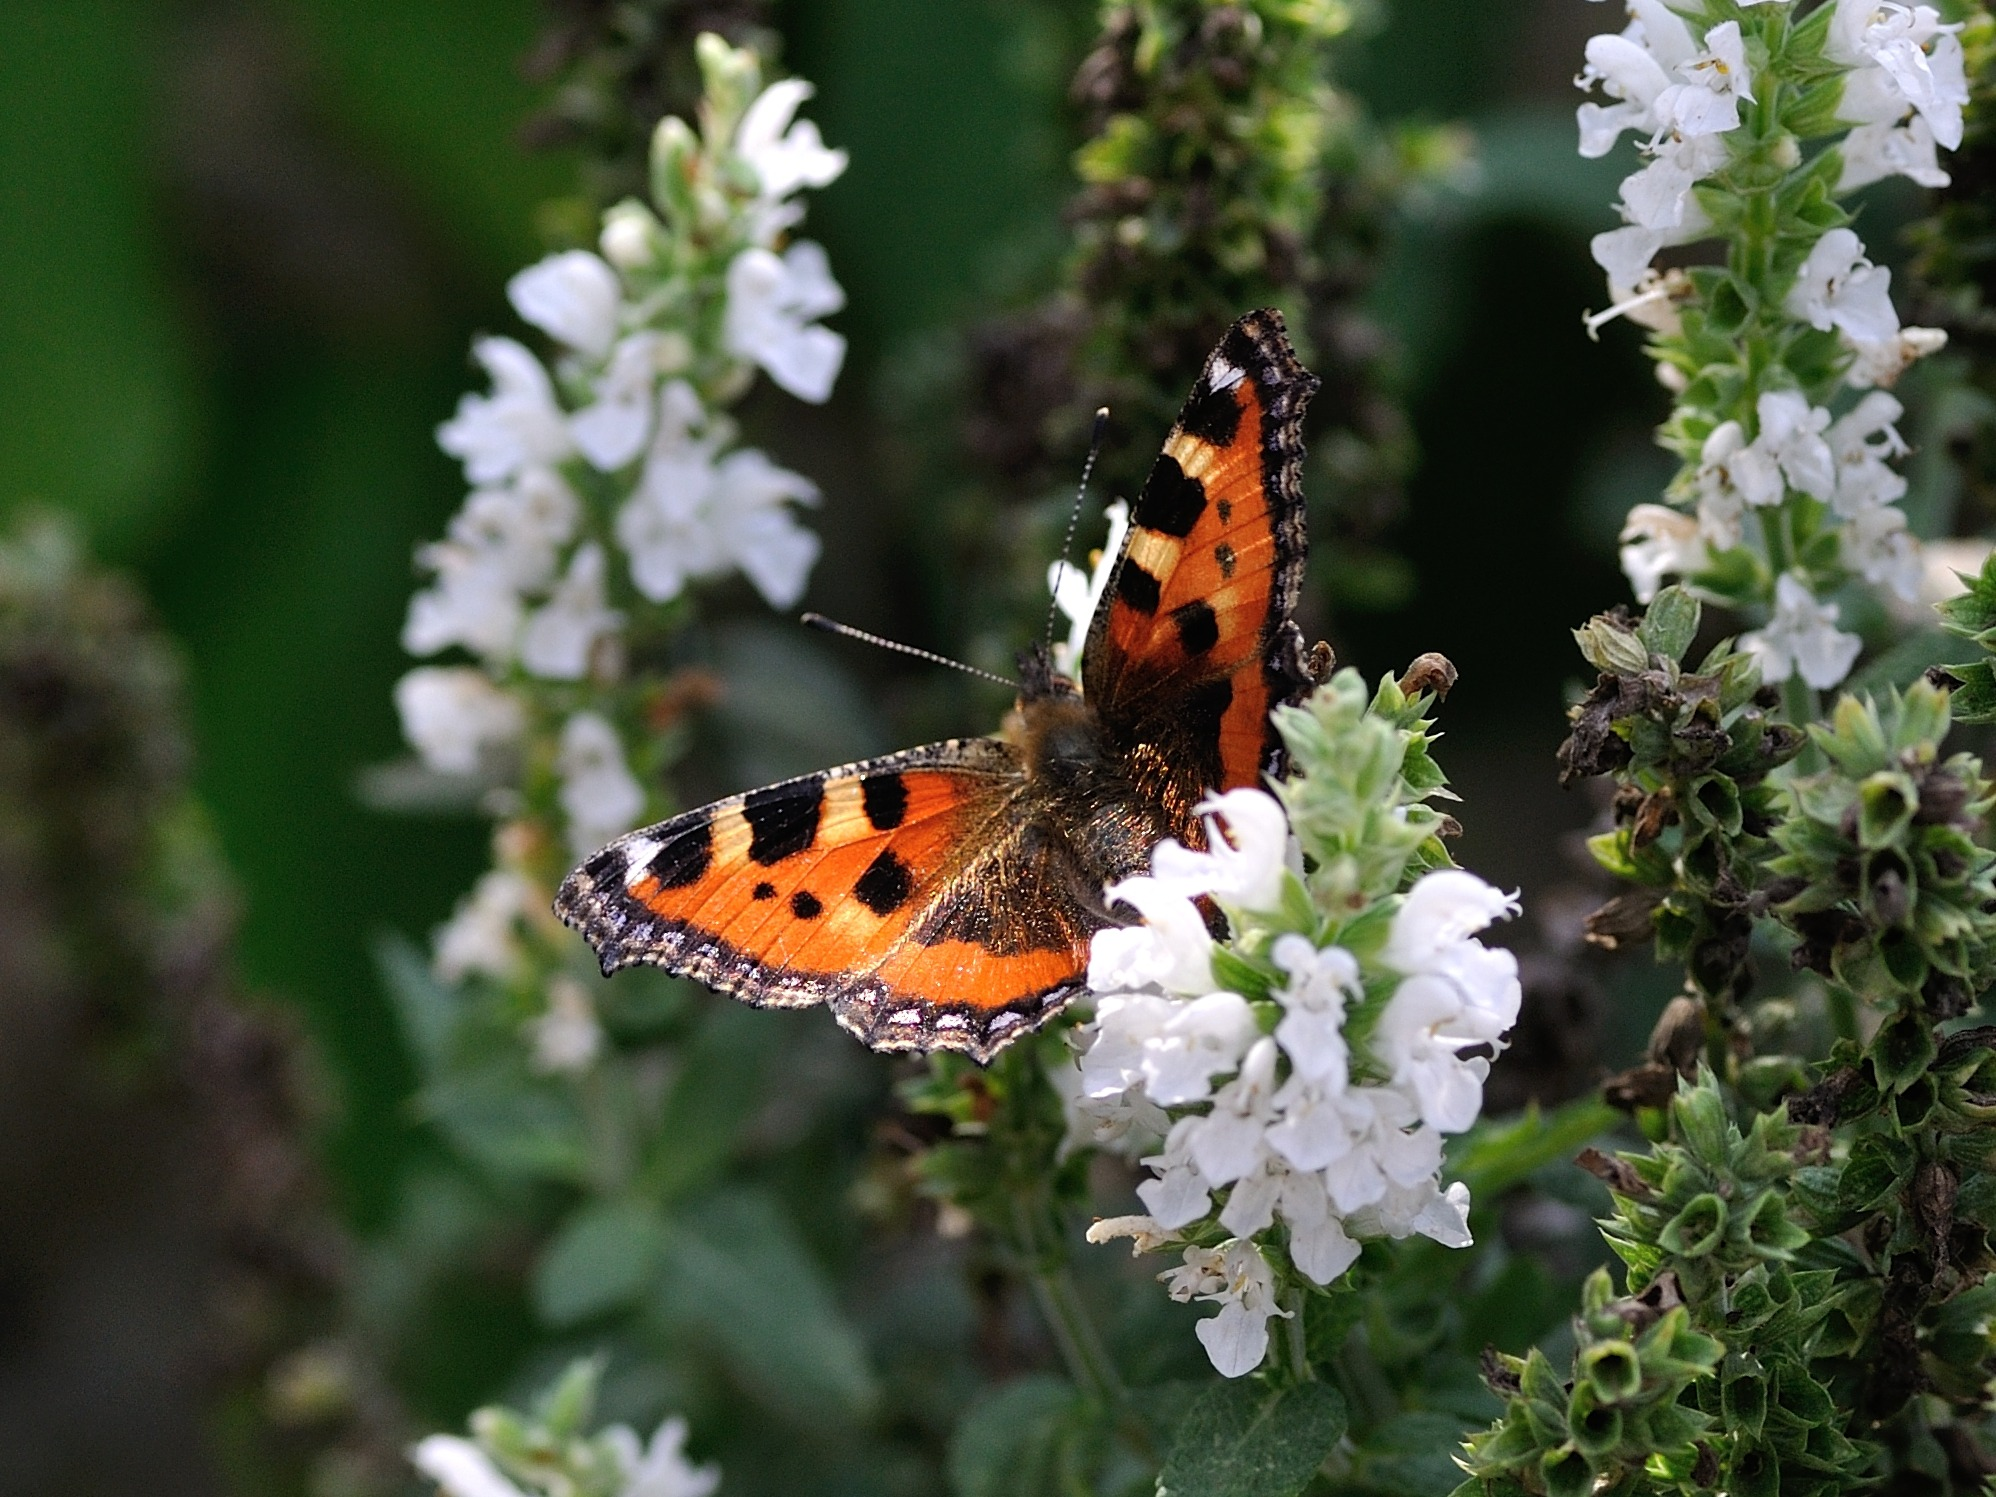 Orange Black And White Butterfly On White Petal Flower Free Stock Photo